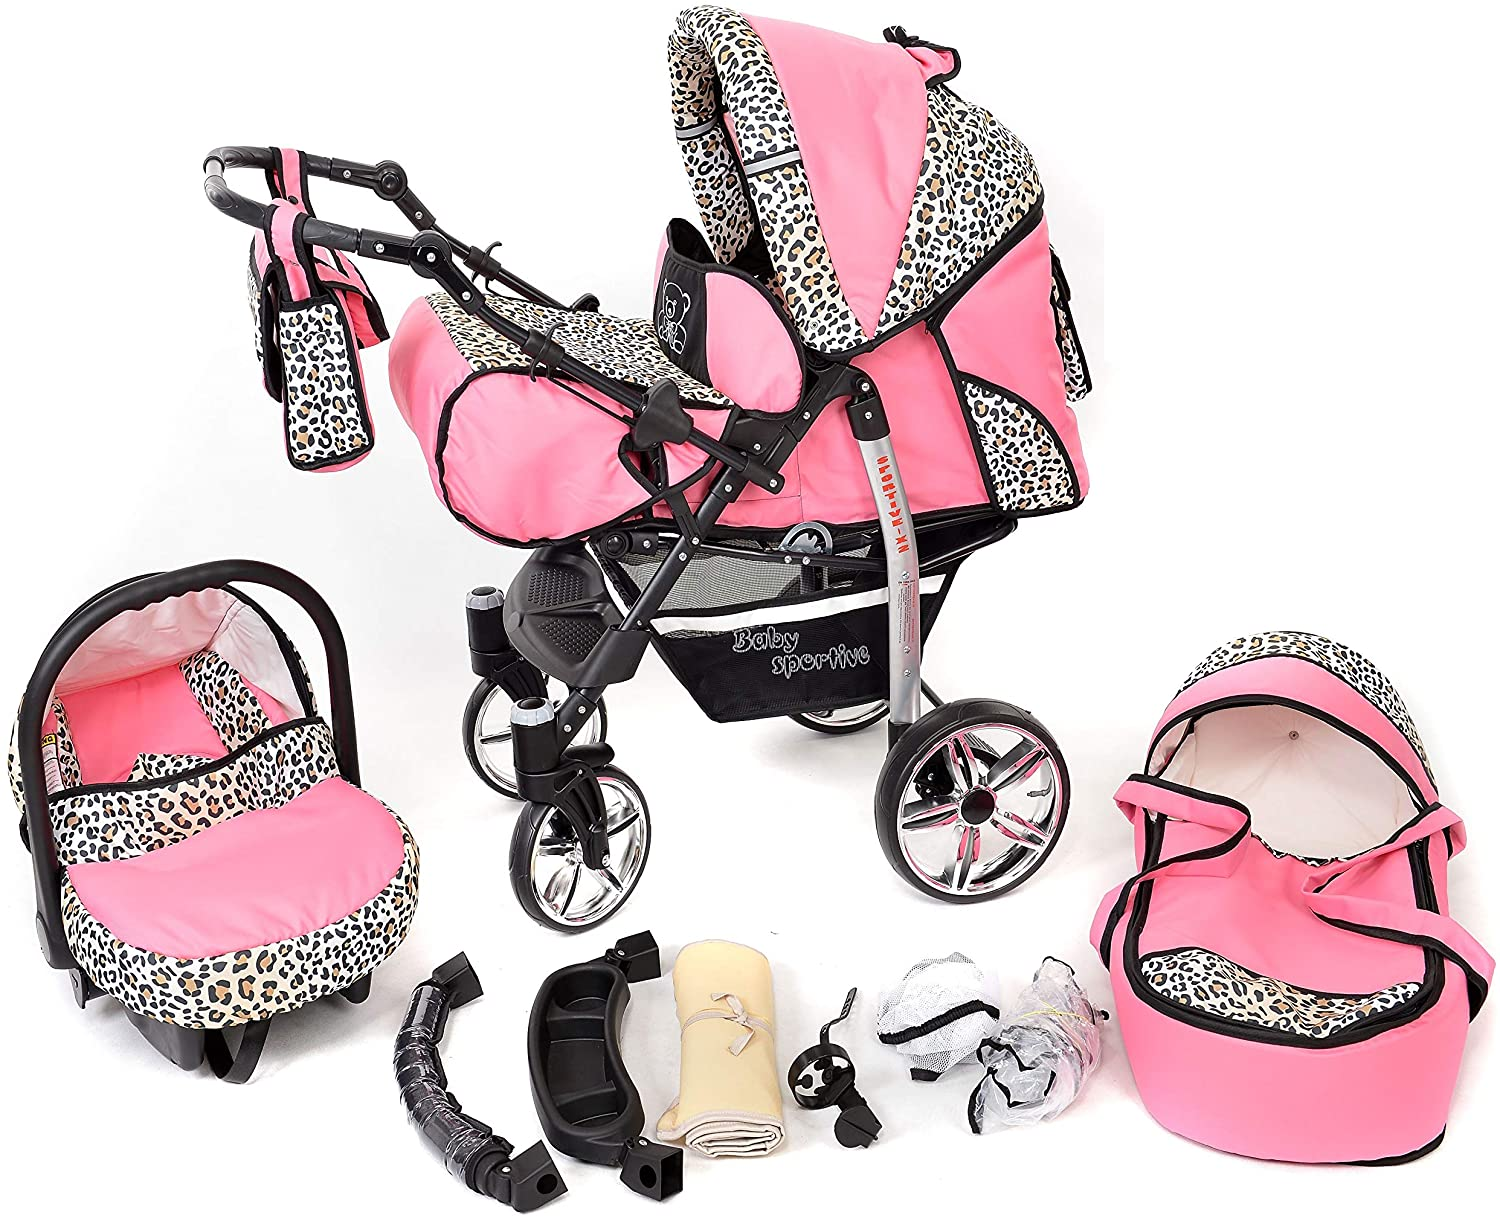 Sportive X2, 3-in-1 Travel System incl. Baby Pram with Swivel Wheels, Car Seat, Pushchair & Accessories (3-in-1 Travel System, Pink & Leopard)